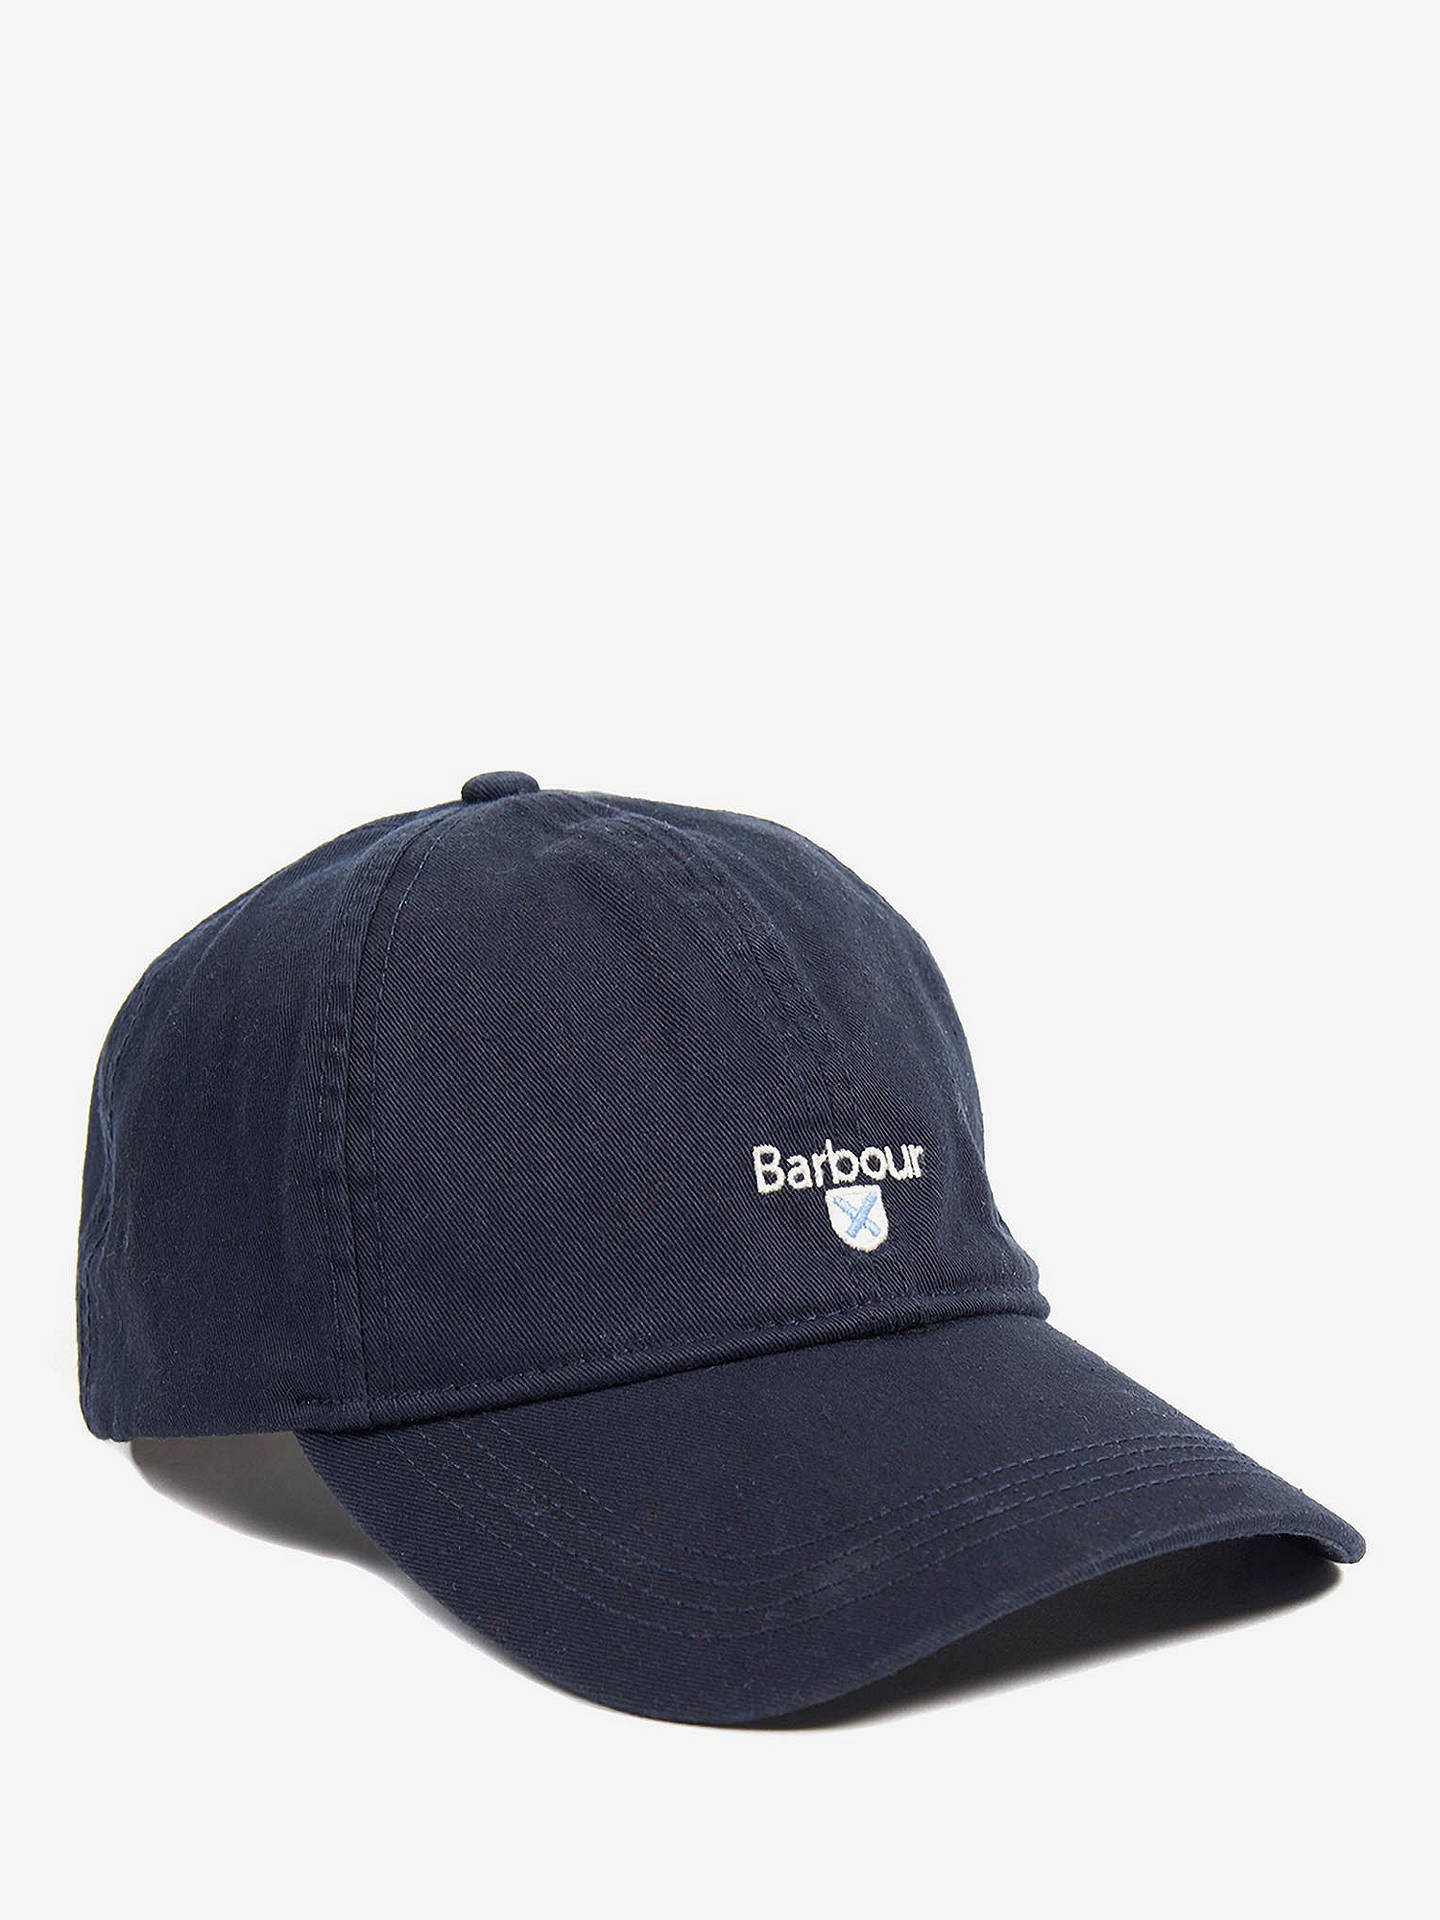 2557f85e Buy Barbour Cascade Sports Baseball Cap, One Size, Navy Online at  johnlewis.com ...